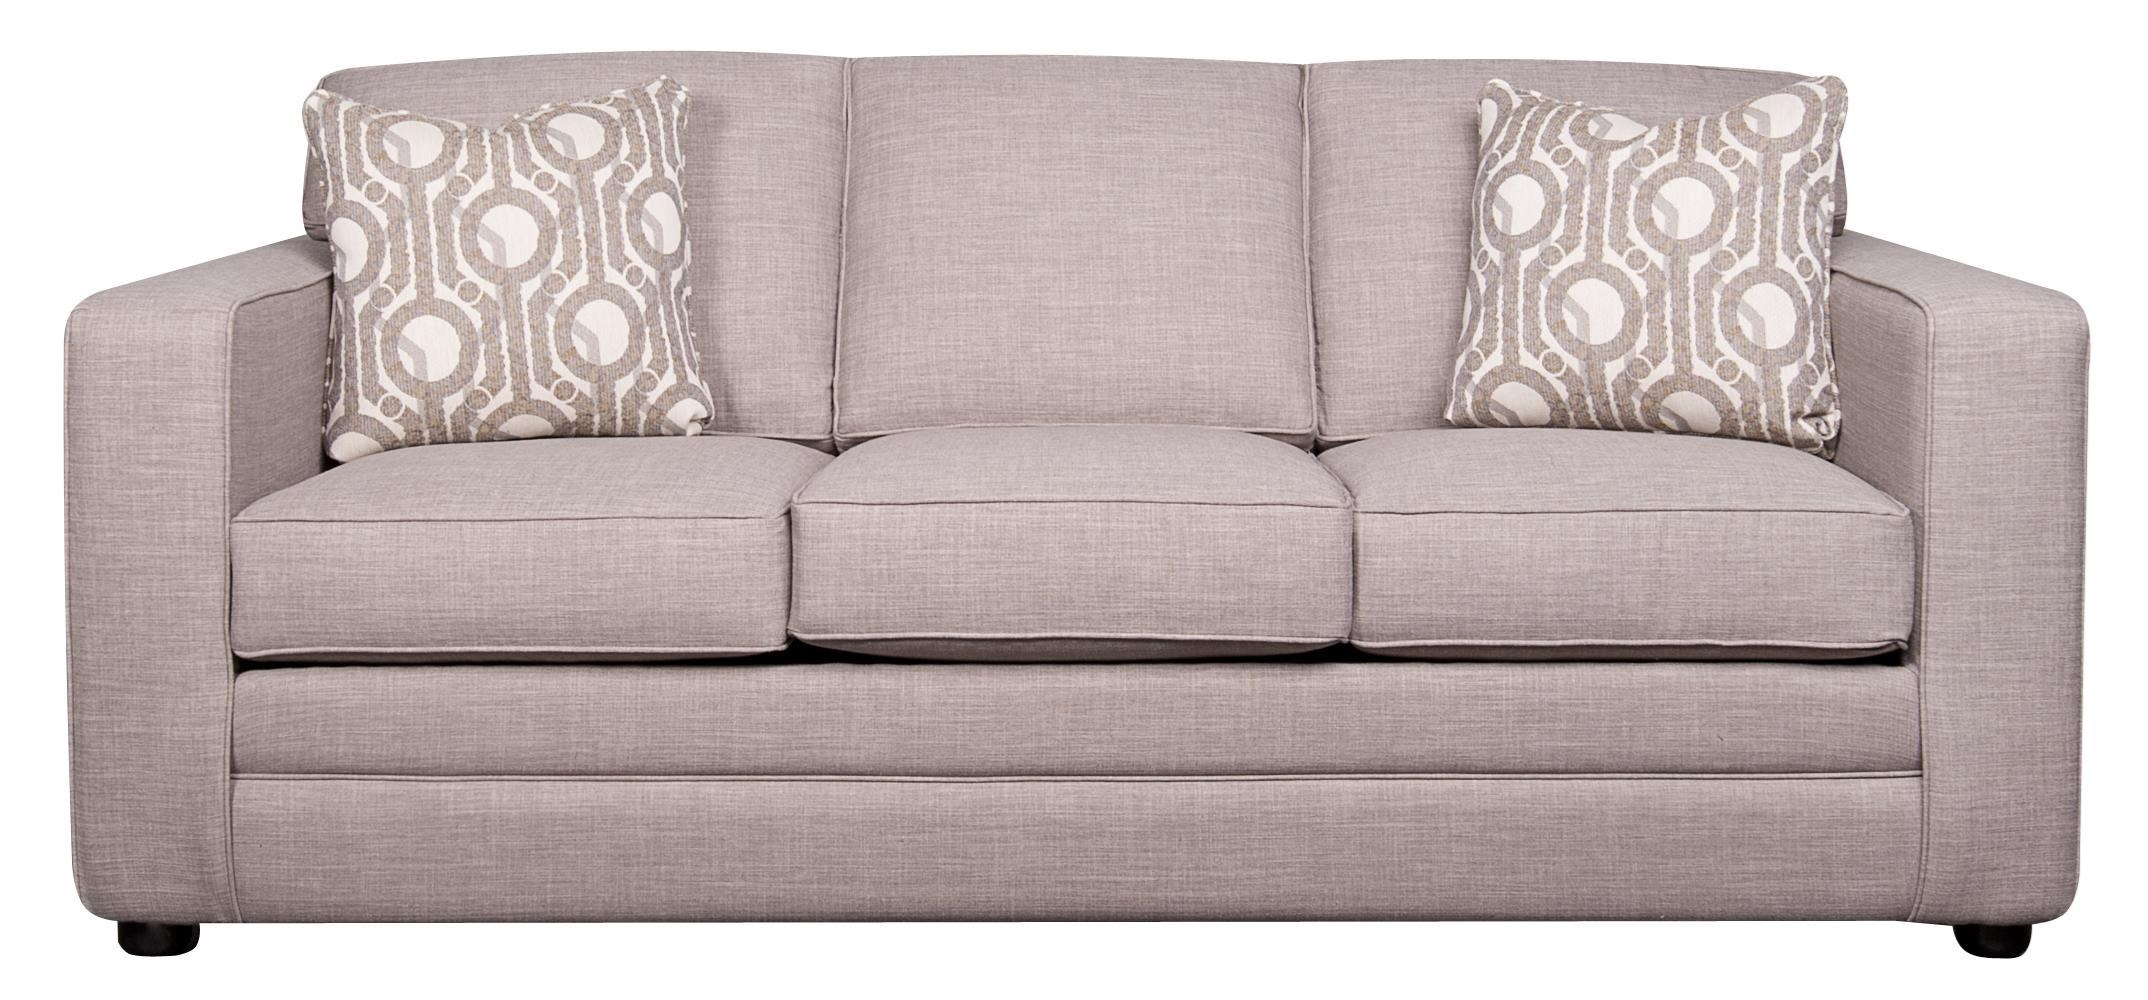 Elliston Place VeraVera Queen Sleeper Sofa ...